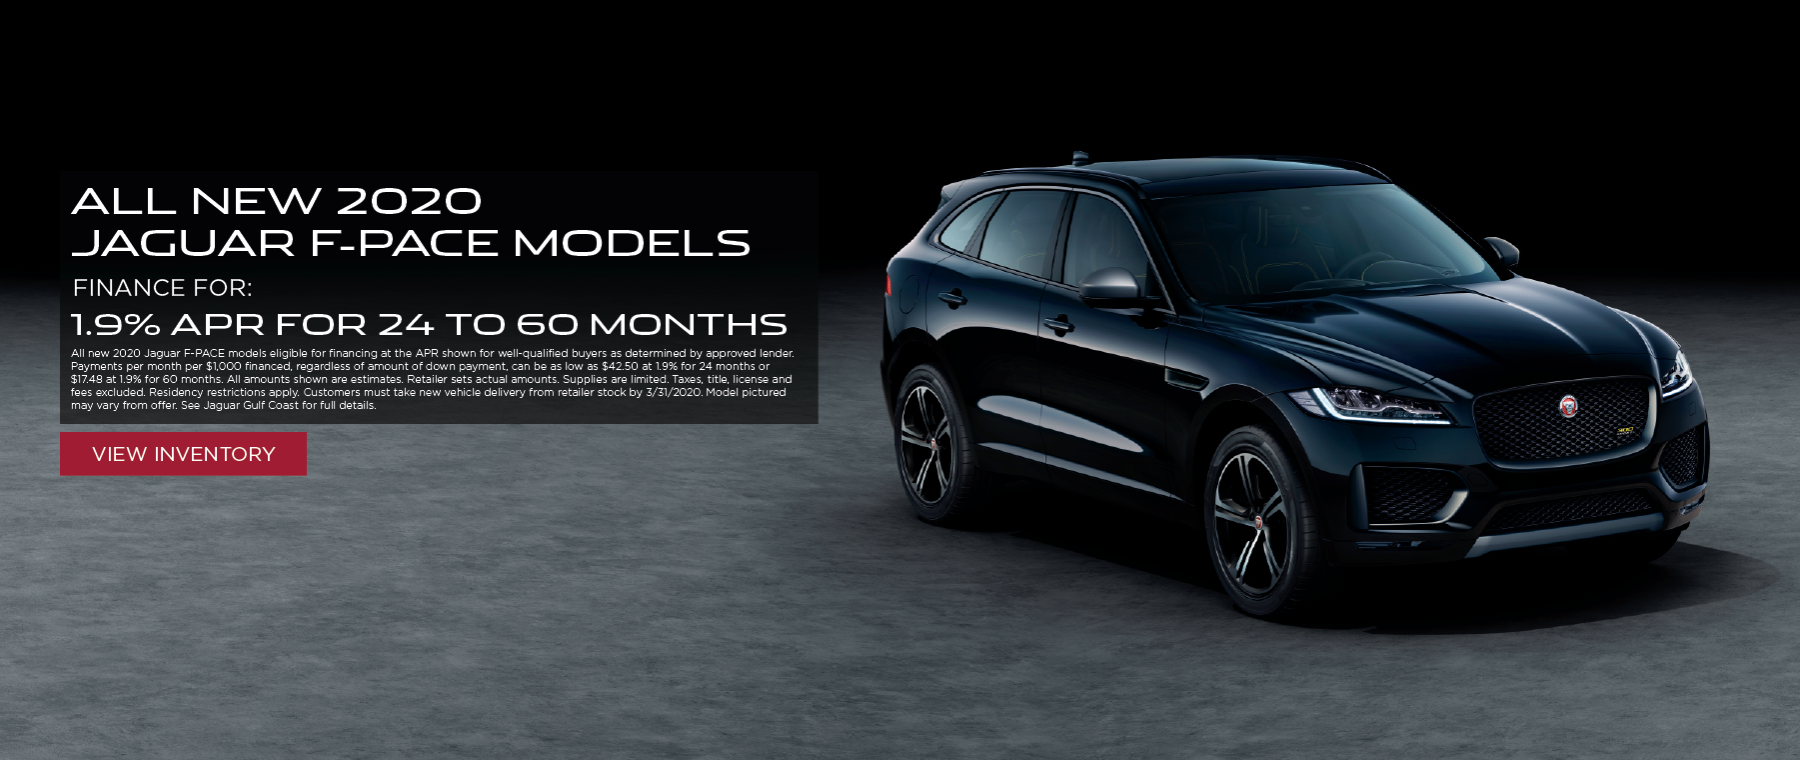 Black 2020 Jaguar F-PACE on pavement in front of black background.1.9% APR for 24 to 60 months on all F-PACE models All new 2020 Jaguar F-PACE models eligible for financing at the APR shown for well-qualified buyers as determined by approved lender. Payments per month per $1,000 financed, regardless of amount of down payment, can be as low as $42.50 at 1.9% for 24 months or $17.48 at 1.9% for 60 months. All amounts shown are estimates. Retailer sets actual amounts. Supplies are limited. Taxes, title, license and fees excluded. Residency restrictions apply. Customers must take new vehicle delivery from retailer stock by 3/31/2020. Model pictured may vary from offer. See Jaguar Gulf Coast for full details.